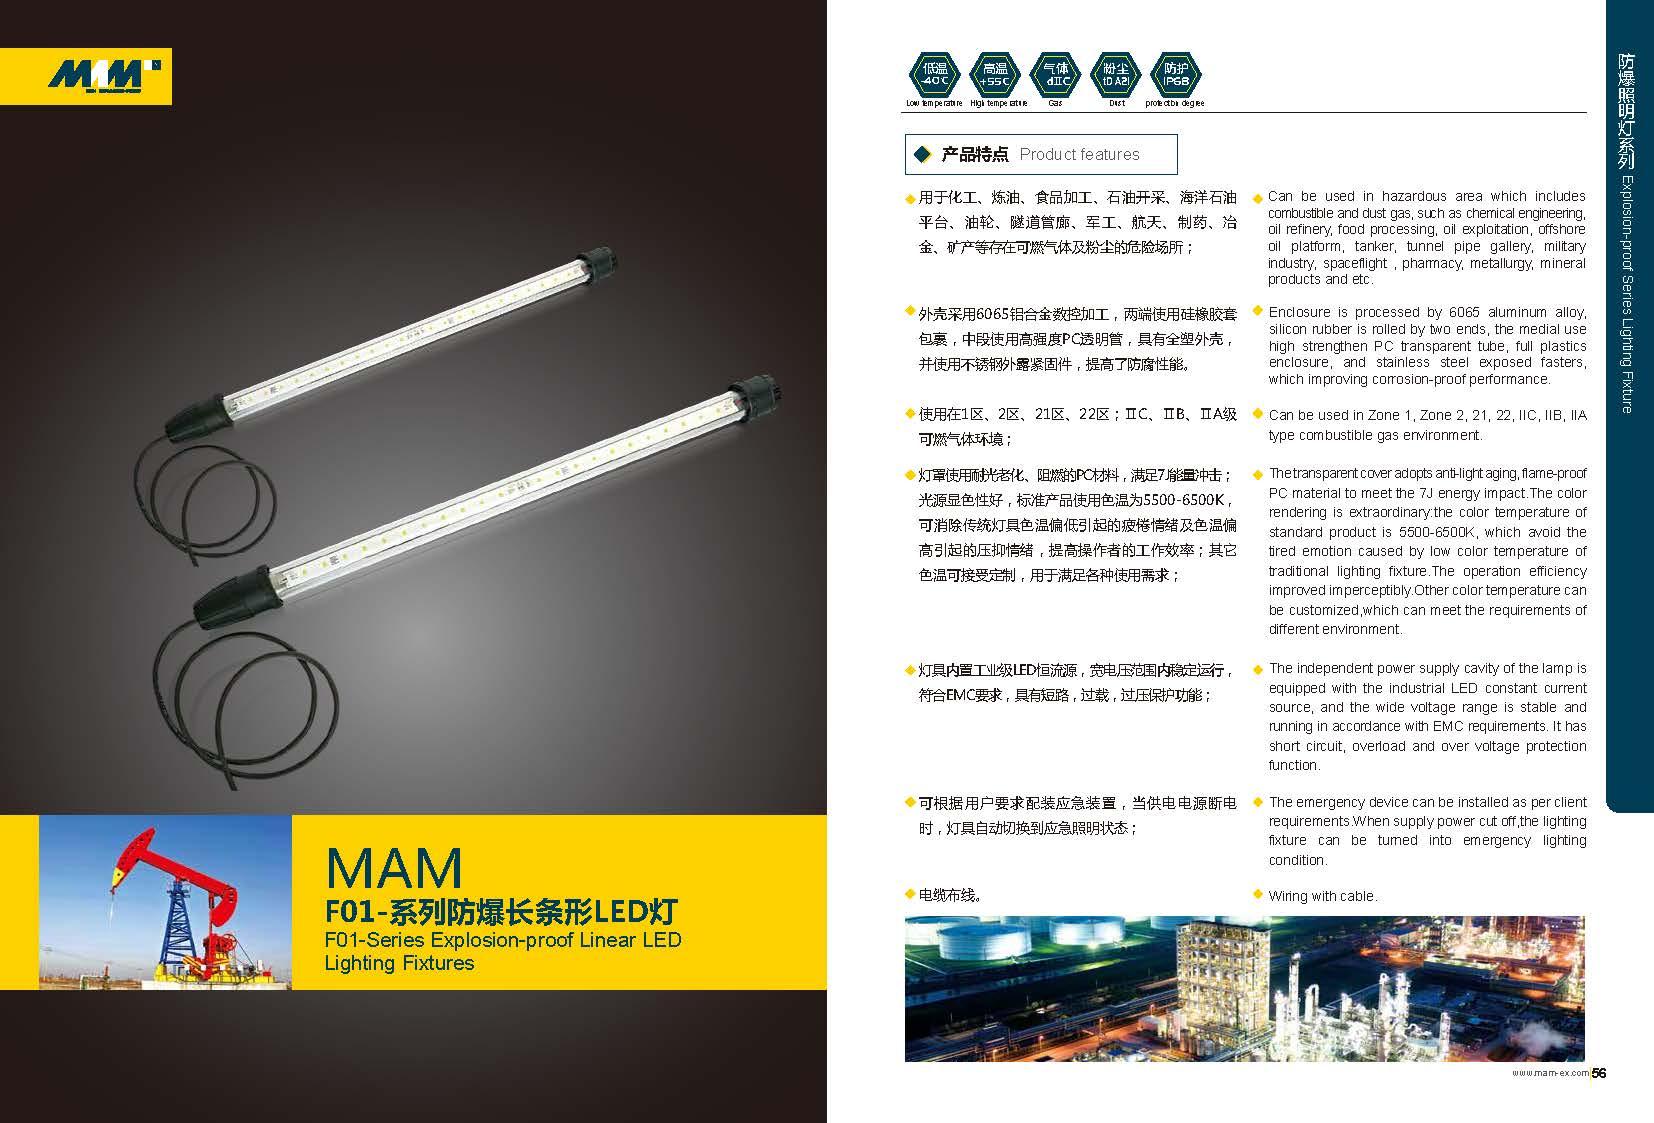 Explosion-proof Liner LED Lighting Fixtures MAMF01 Series